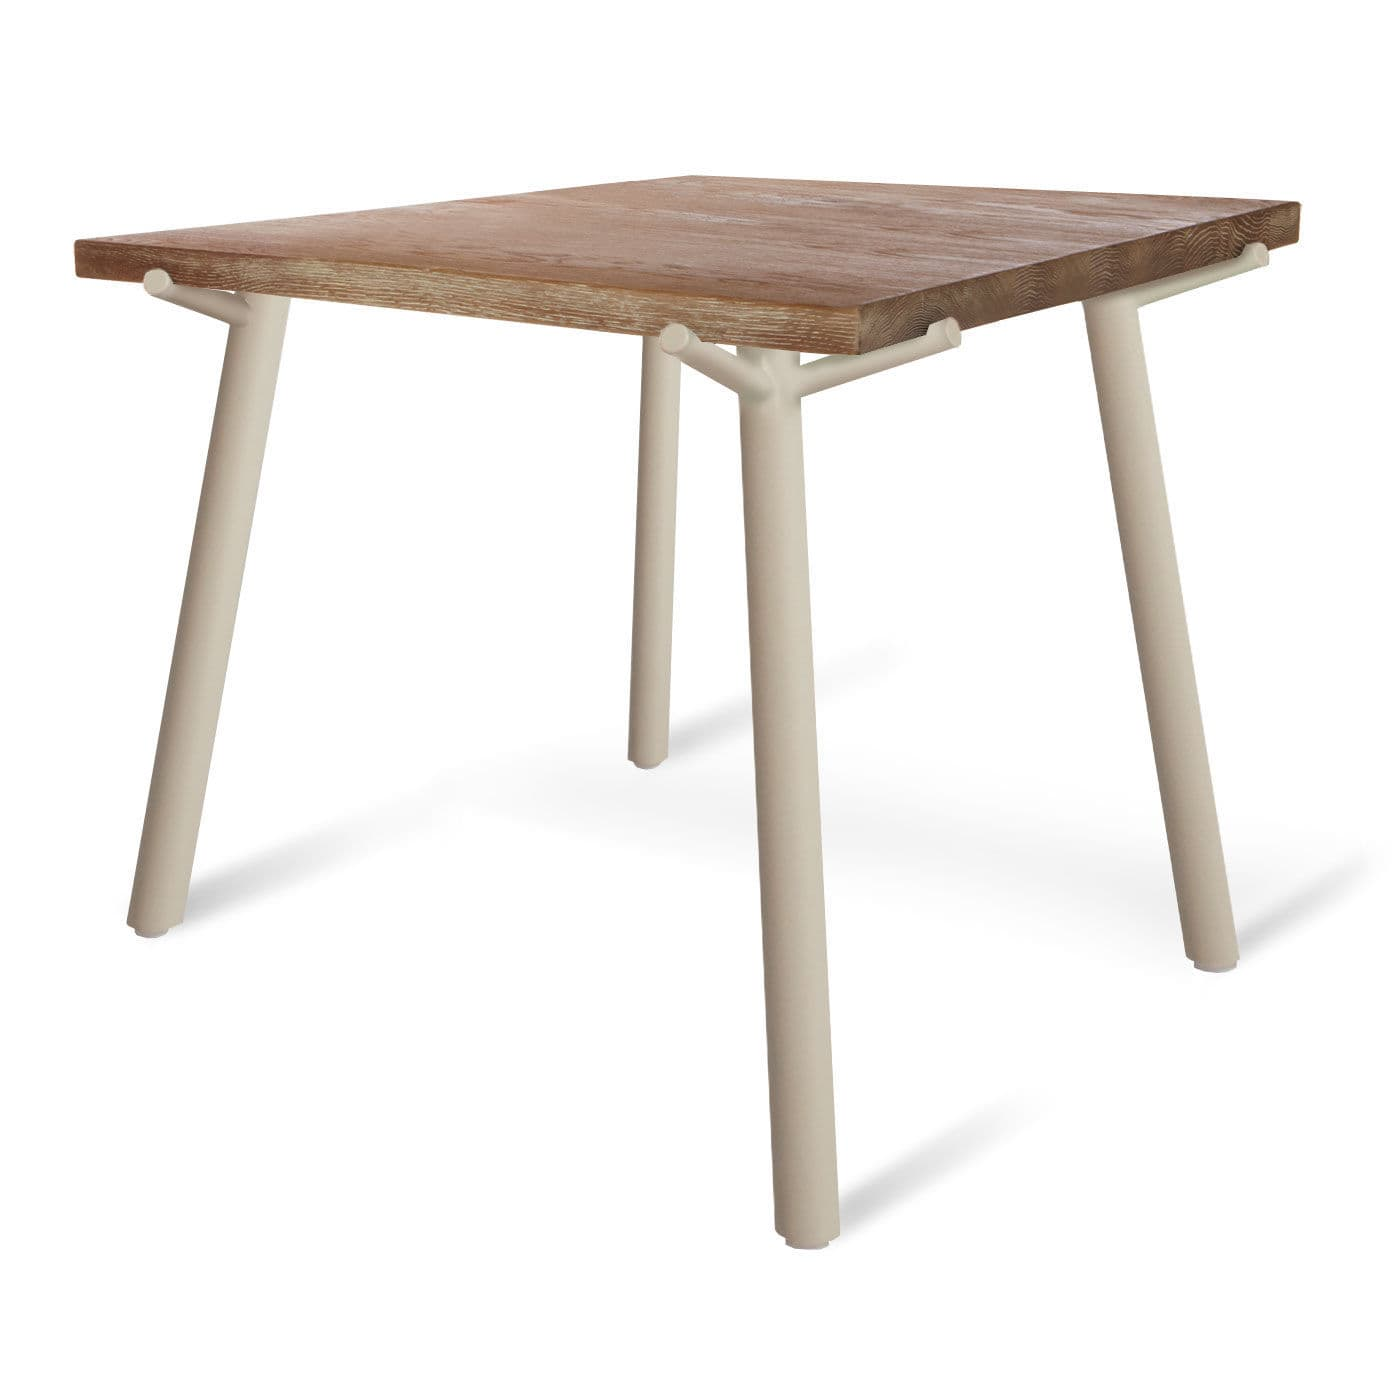 Contemporary dining table   oak   solid wood   powder coated steel  BRANCH BLU DOT. Contemporary dining table   oak   solid wood   powder coated steel